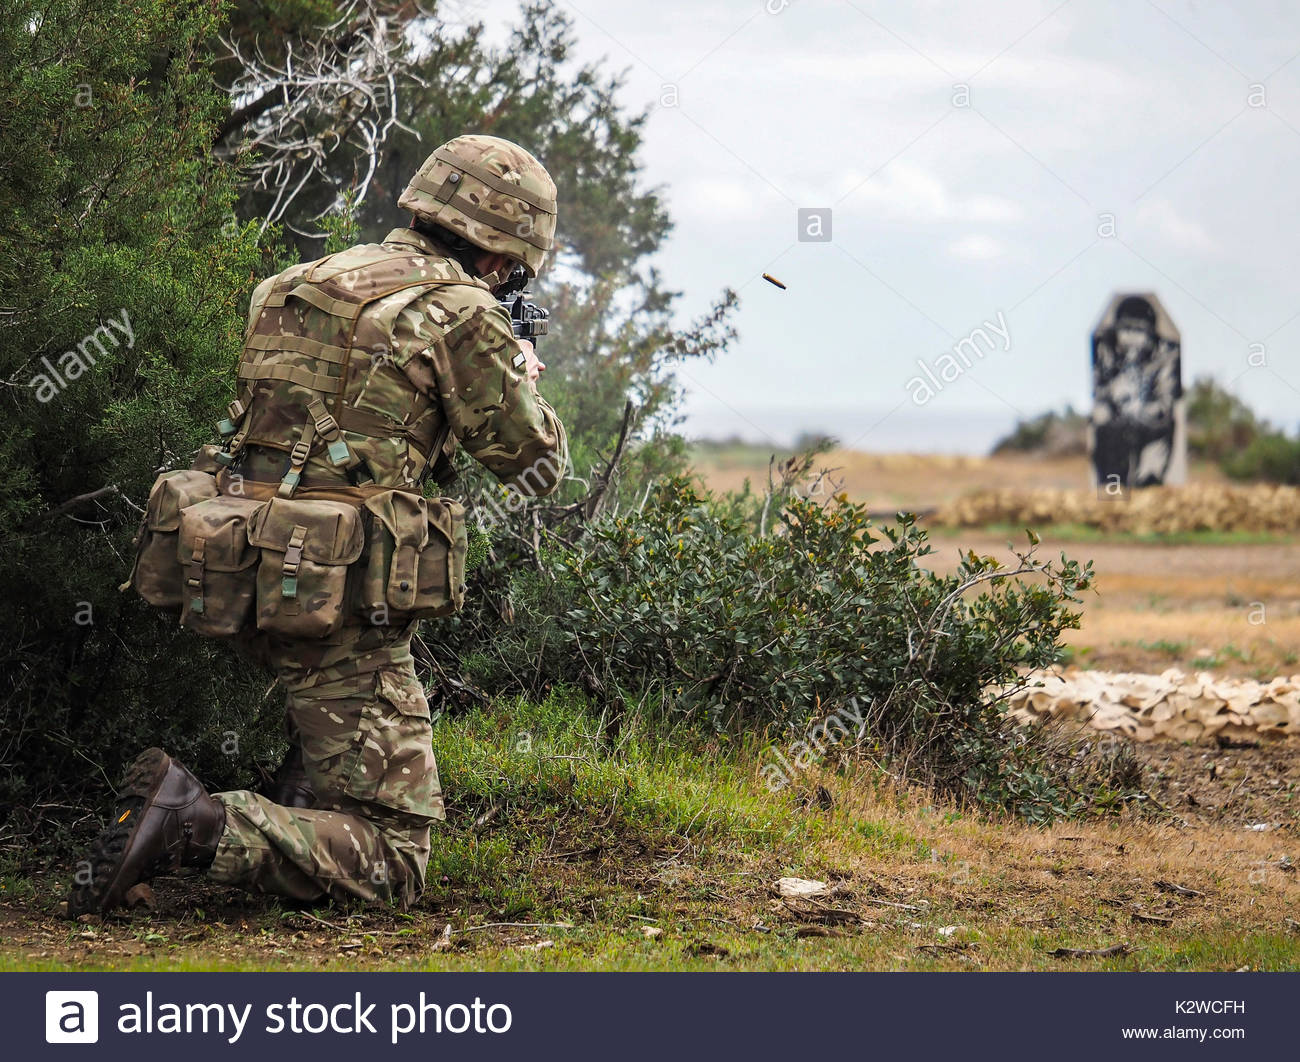 British Army Soldier on a live fire range in Cyprus 2017 - Stock Image